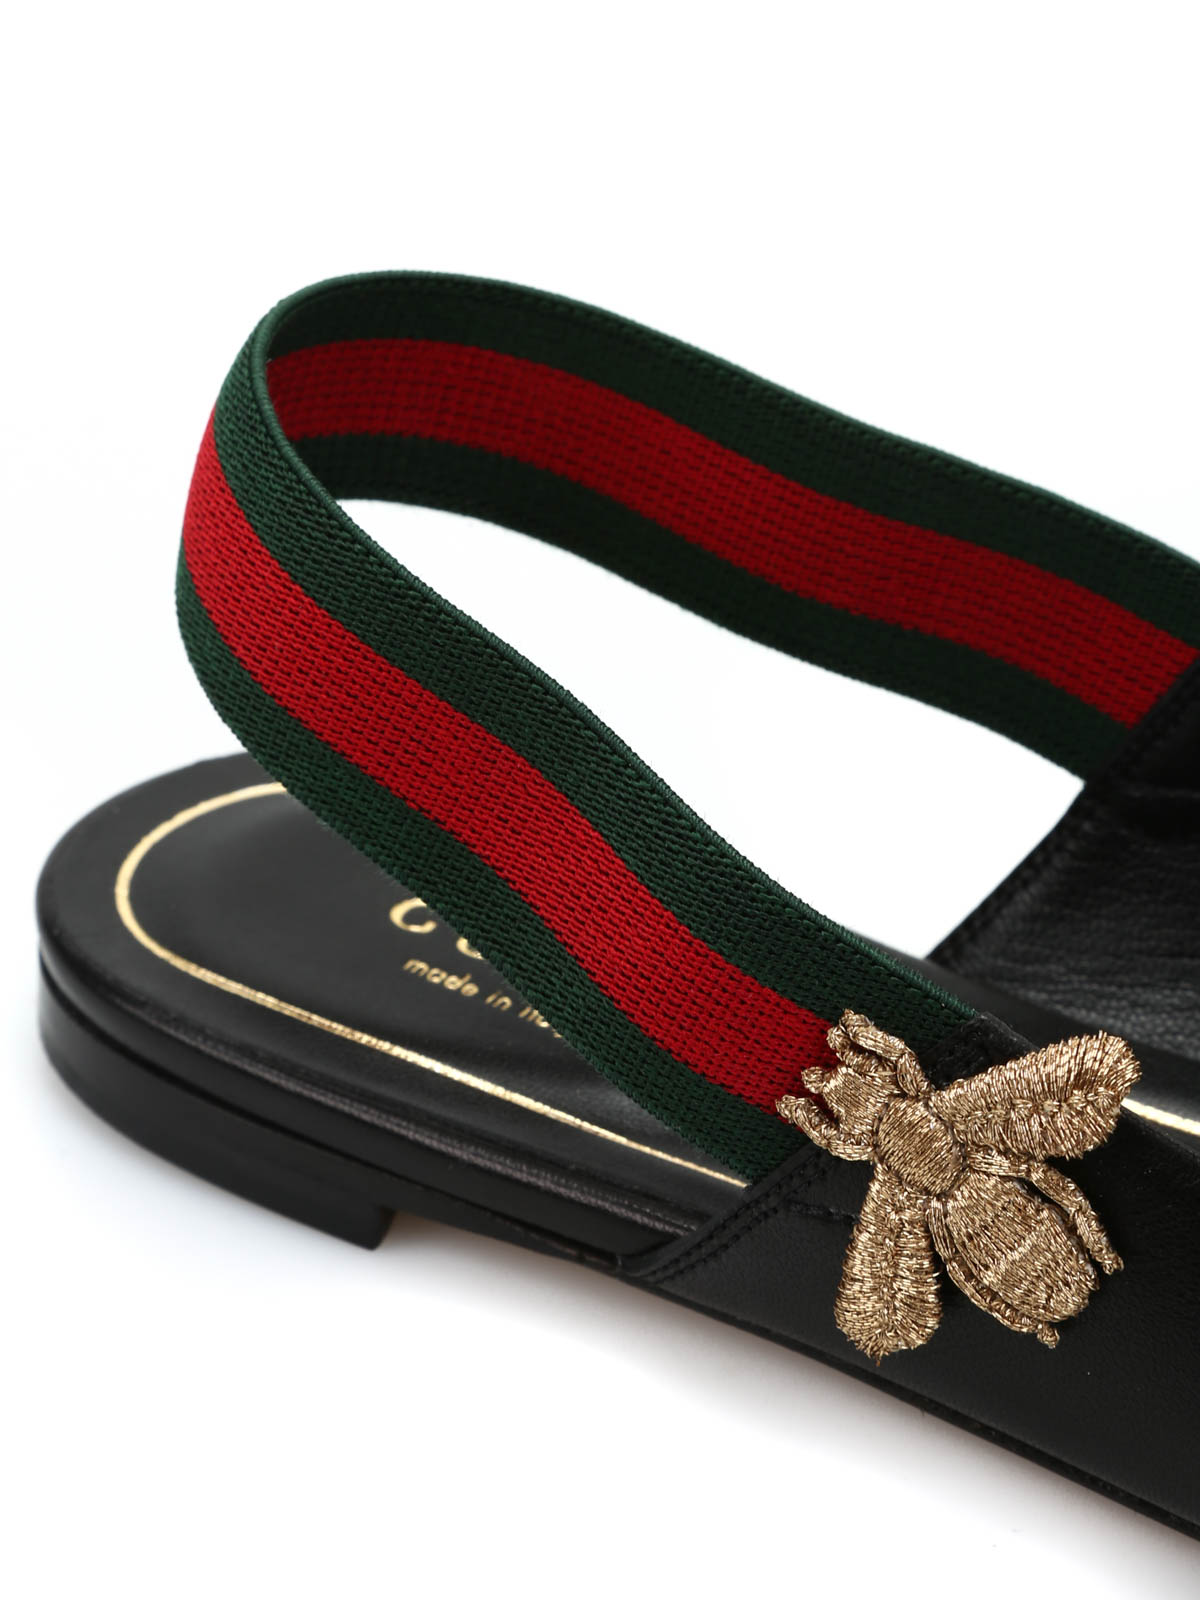 75ee9f5e74b55d Gucci - Leather flats with elastic band - flat shoes - 414975 BTRF0 1060